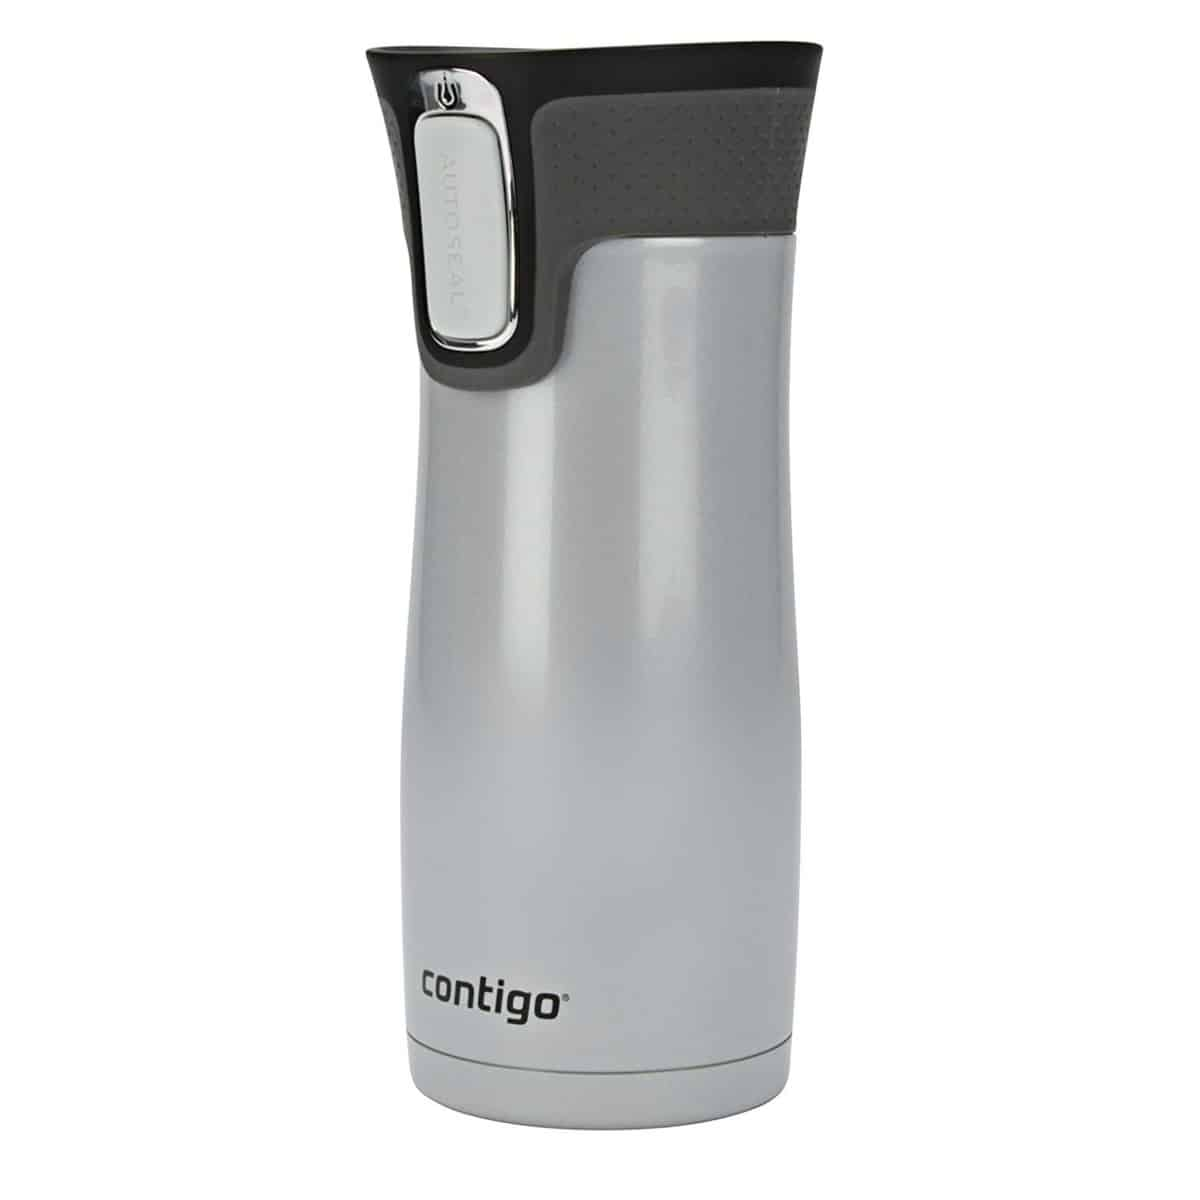 Contigo AUTOSEAL West Loop Vaccuum-Insulated Stainless Steel Travel Mug, 16 oz, Polar White